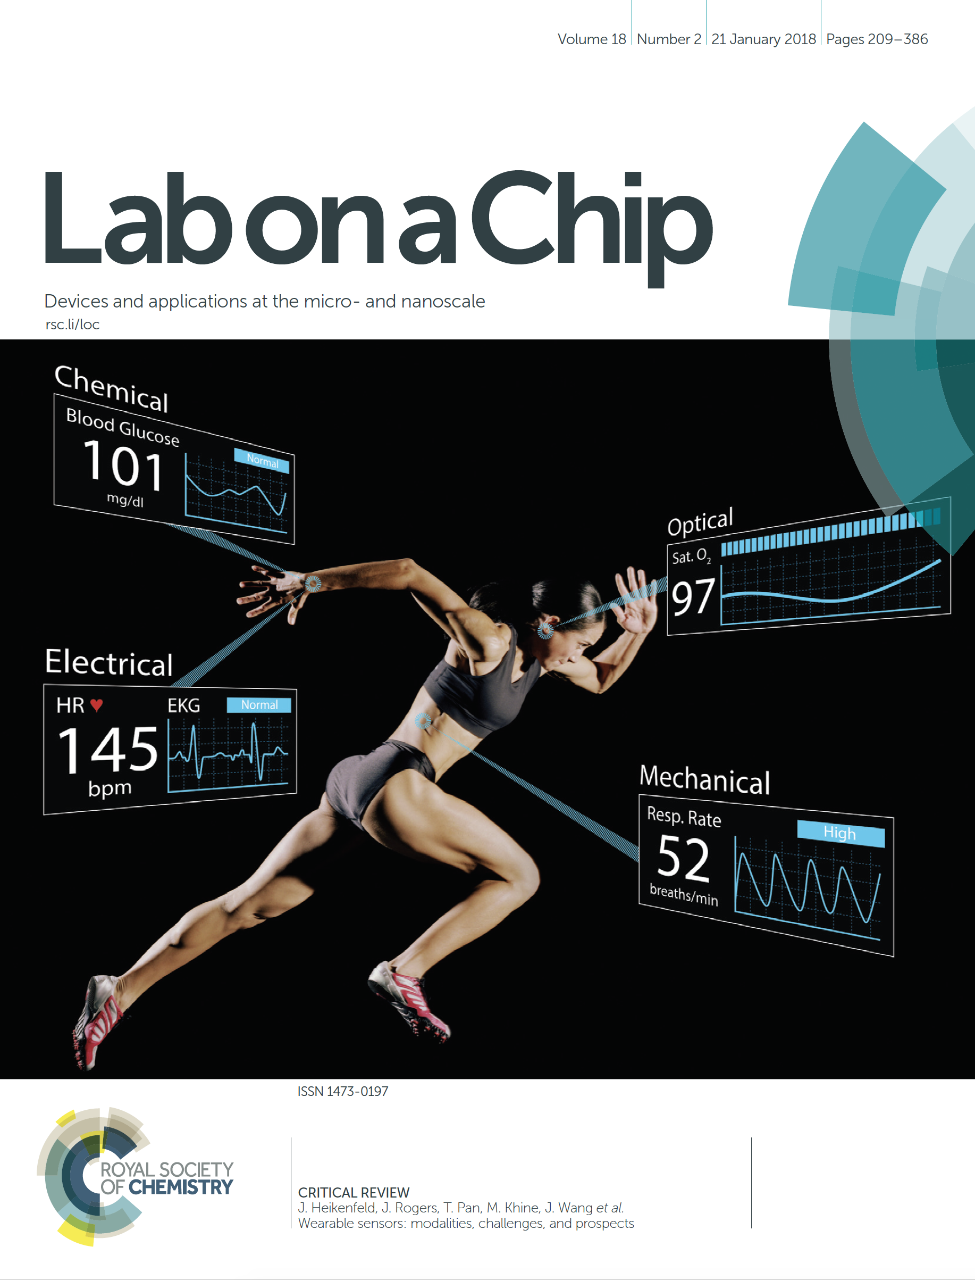 UC student Andrew Jajack designed the graphic depicting the four ways that sensors can record biometric data for athletes for the latest cover of the nanotechnology journal Lab on a Chip.